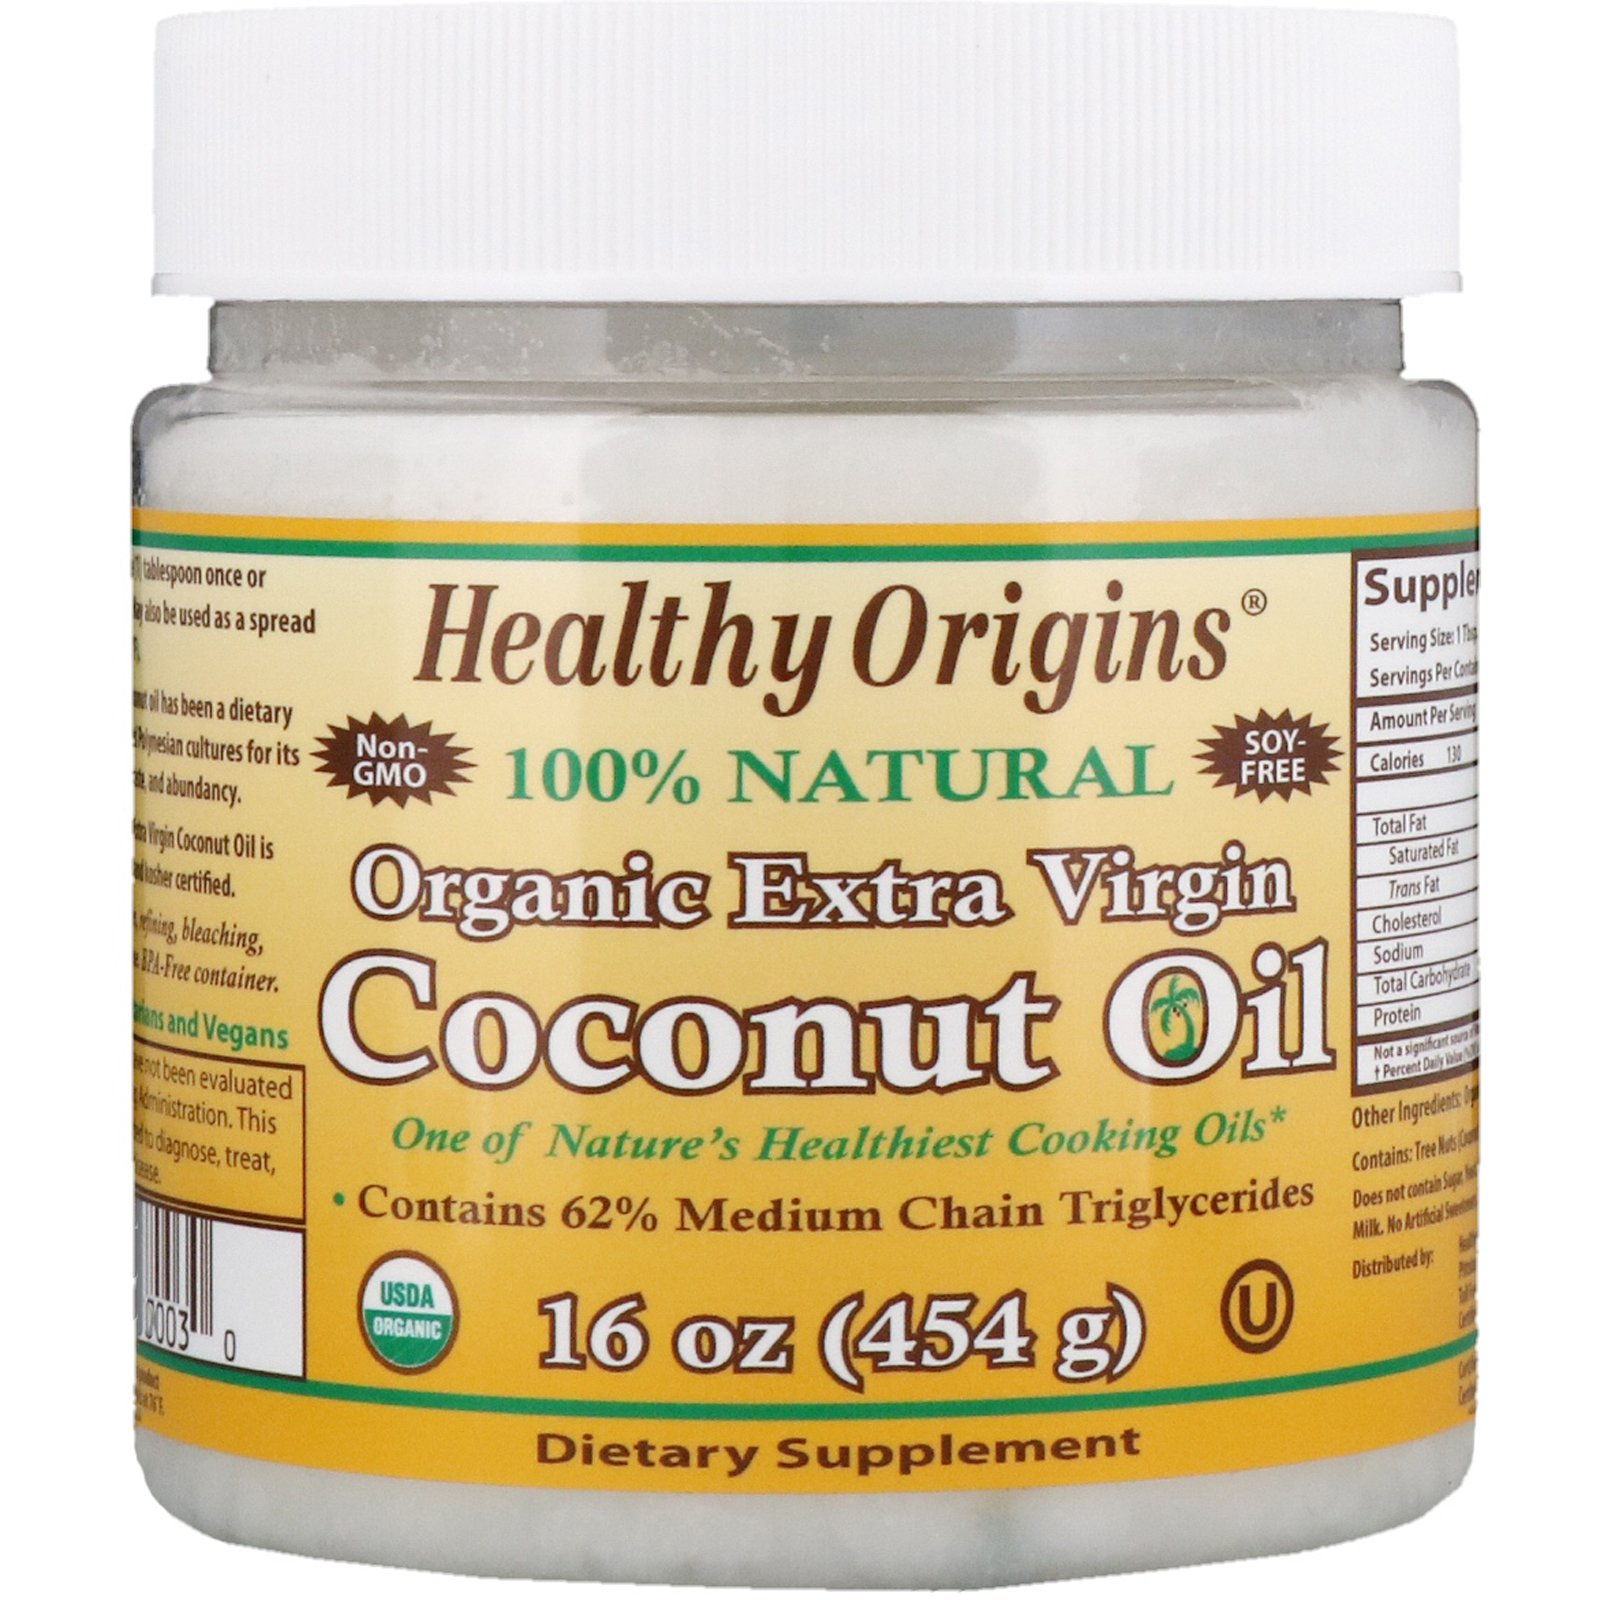 Кокосове масло, Coconut Oil, Healthy Origins, органік, 454 г